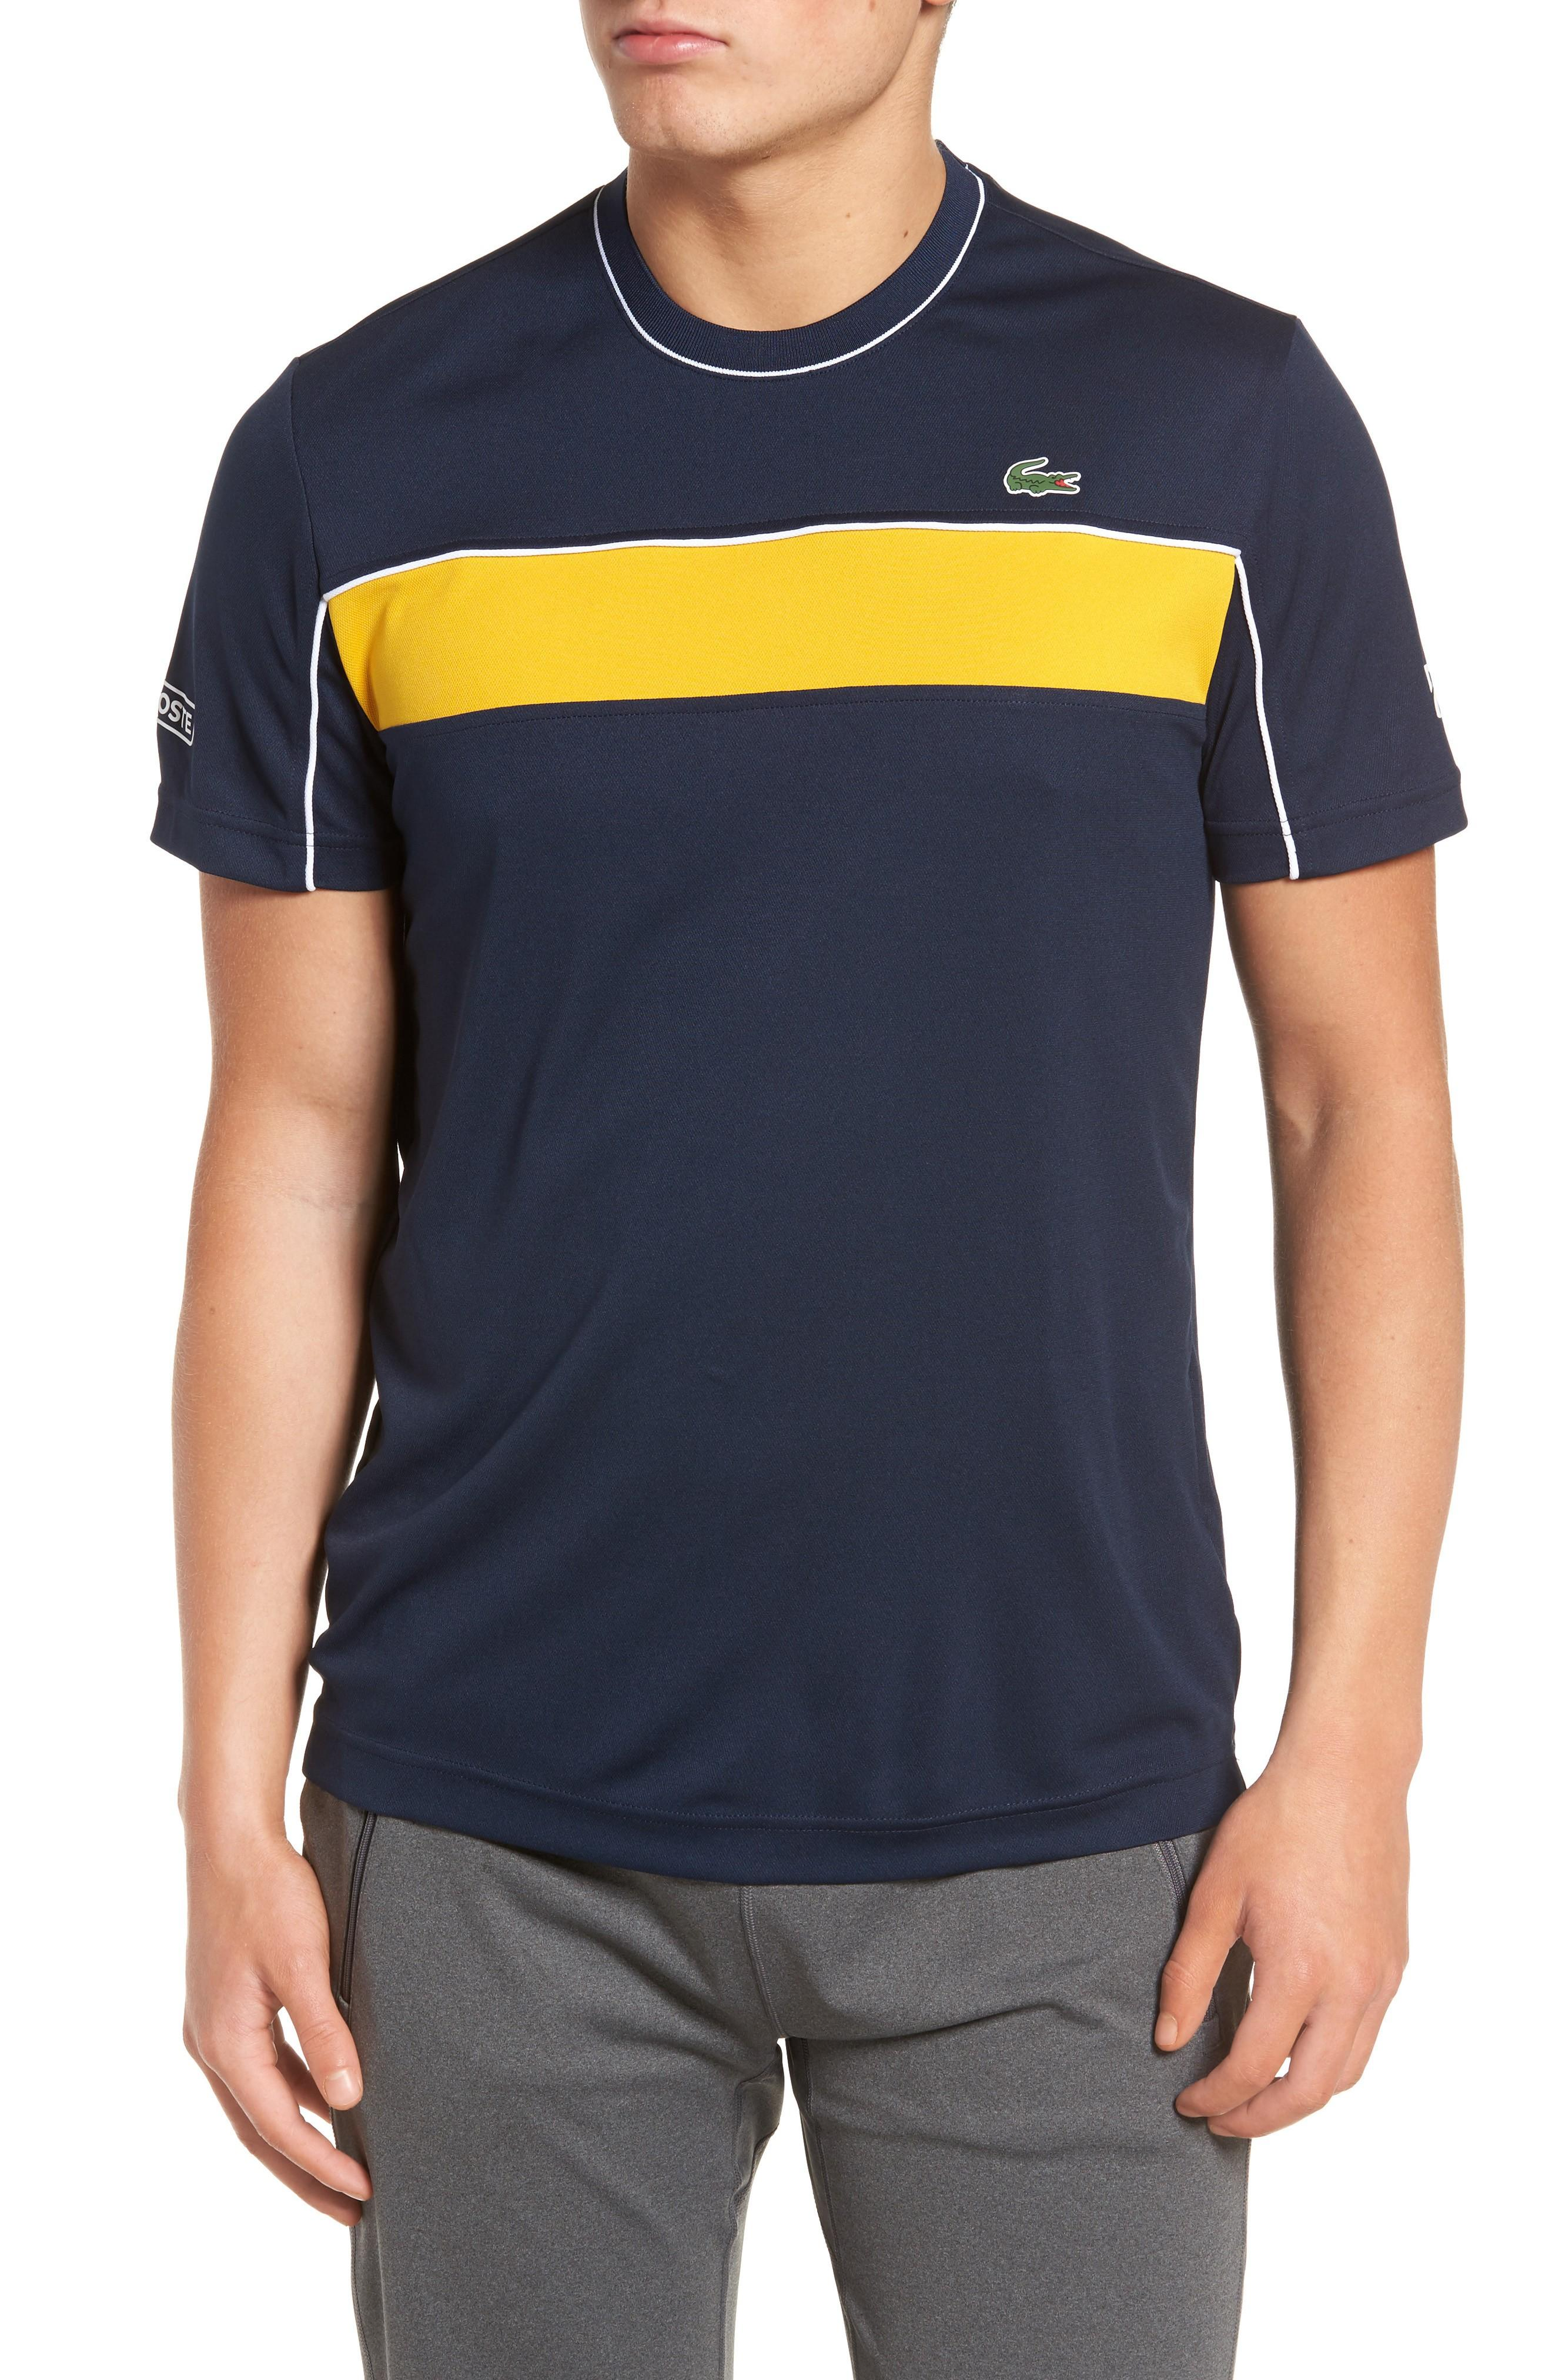 Lacoste Pique T-shirt In Navy Blue/ Buttercup-white